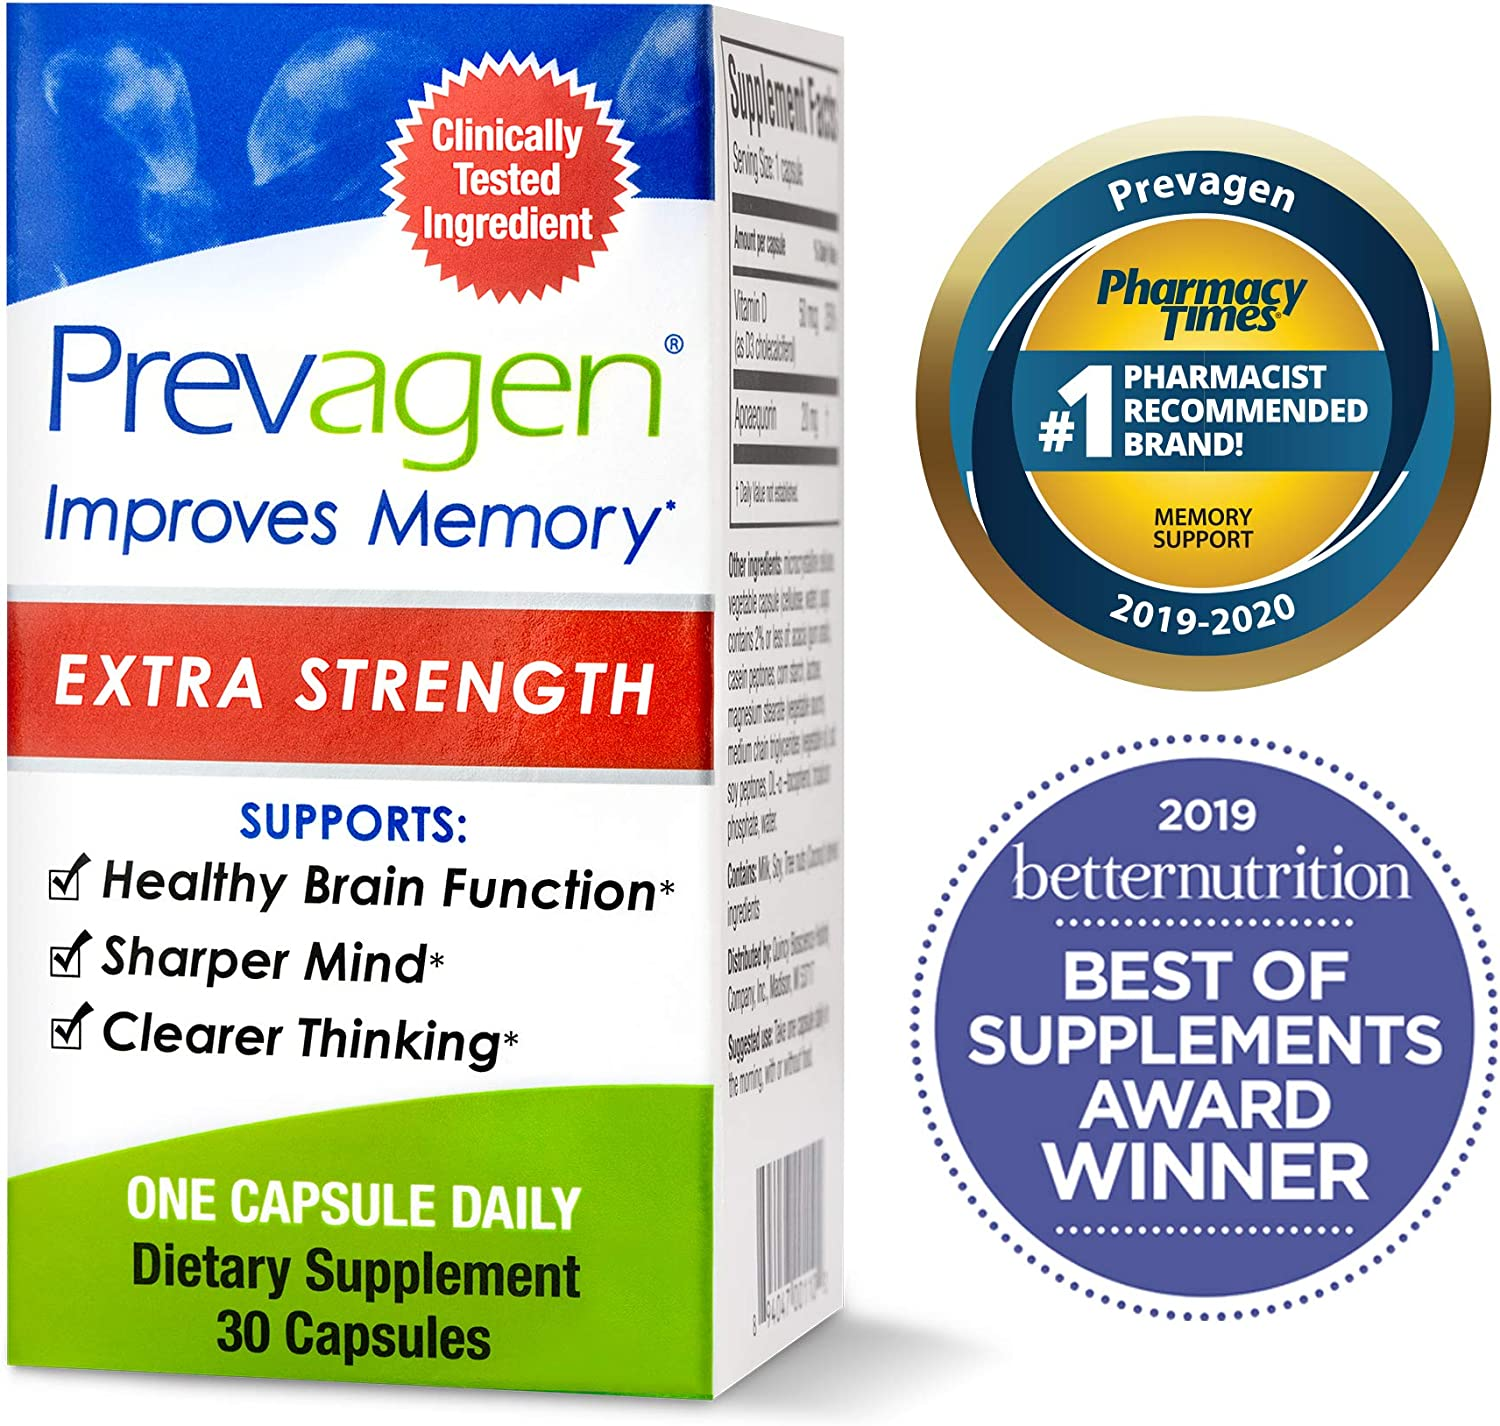 Prevagen Improves Memory - Extra Strength 20mg, 30 Capsules with Apoaequorin & Vitamin D | Brain Supplement for Better Brain Health, Supports Healthy Brain Function and Clarity | Memory Supplement